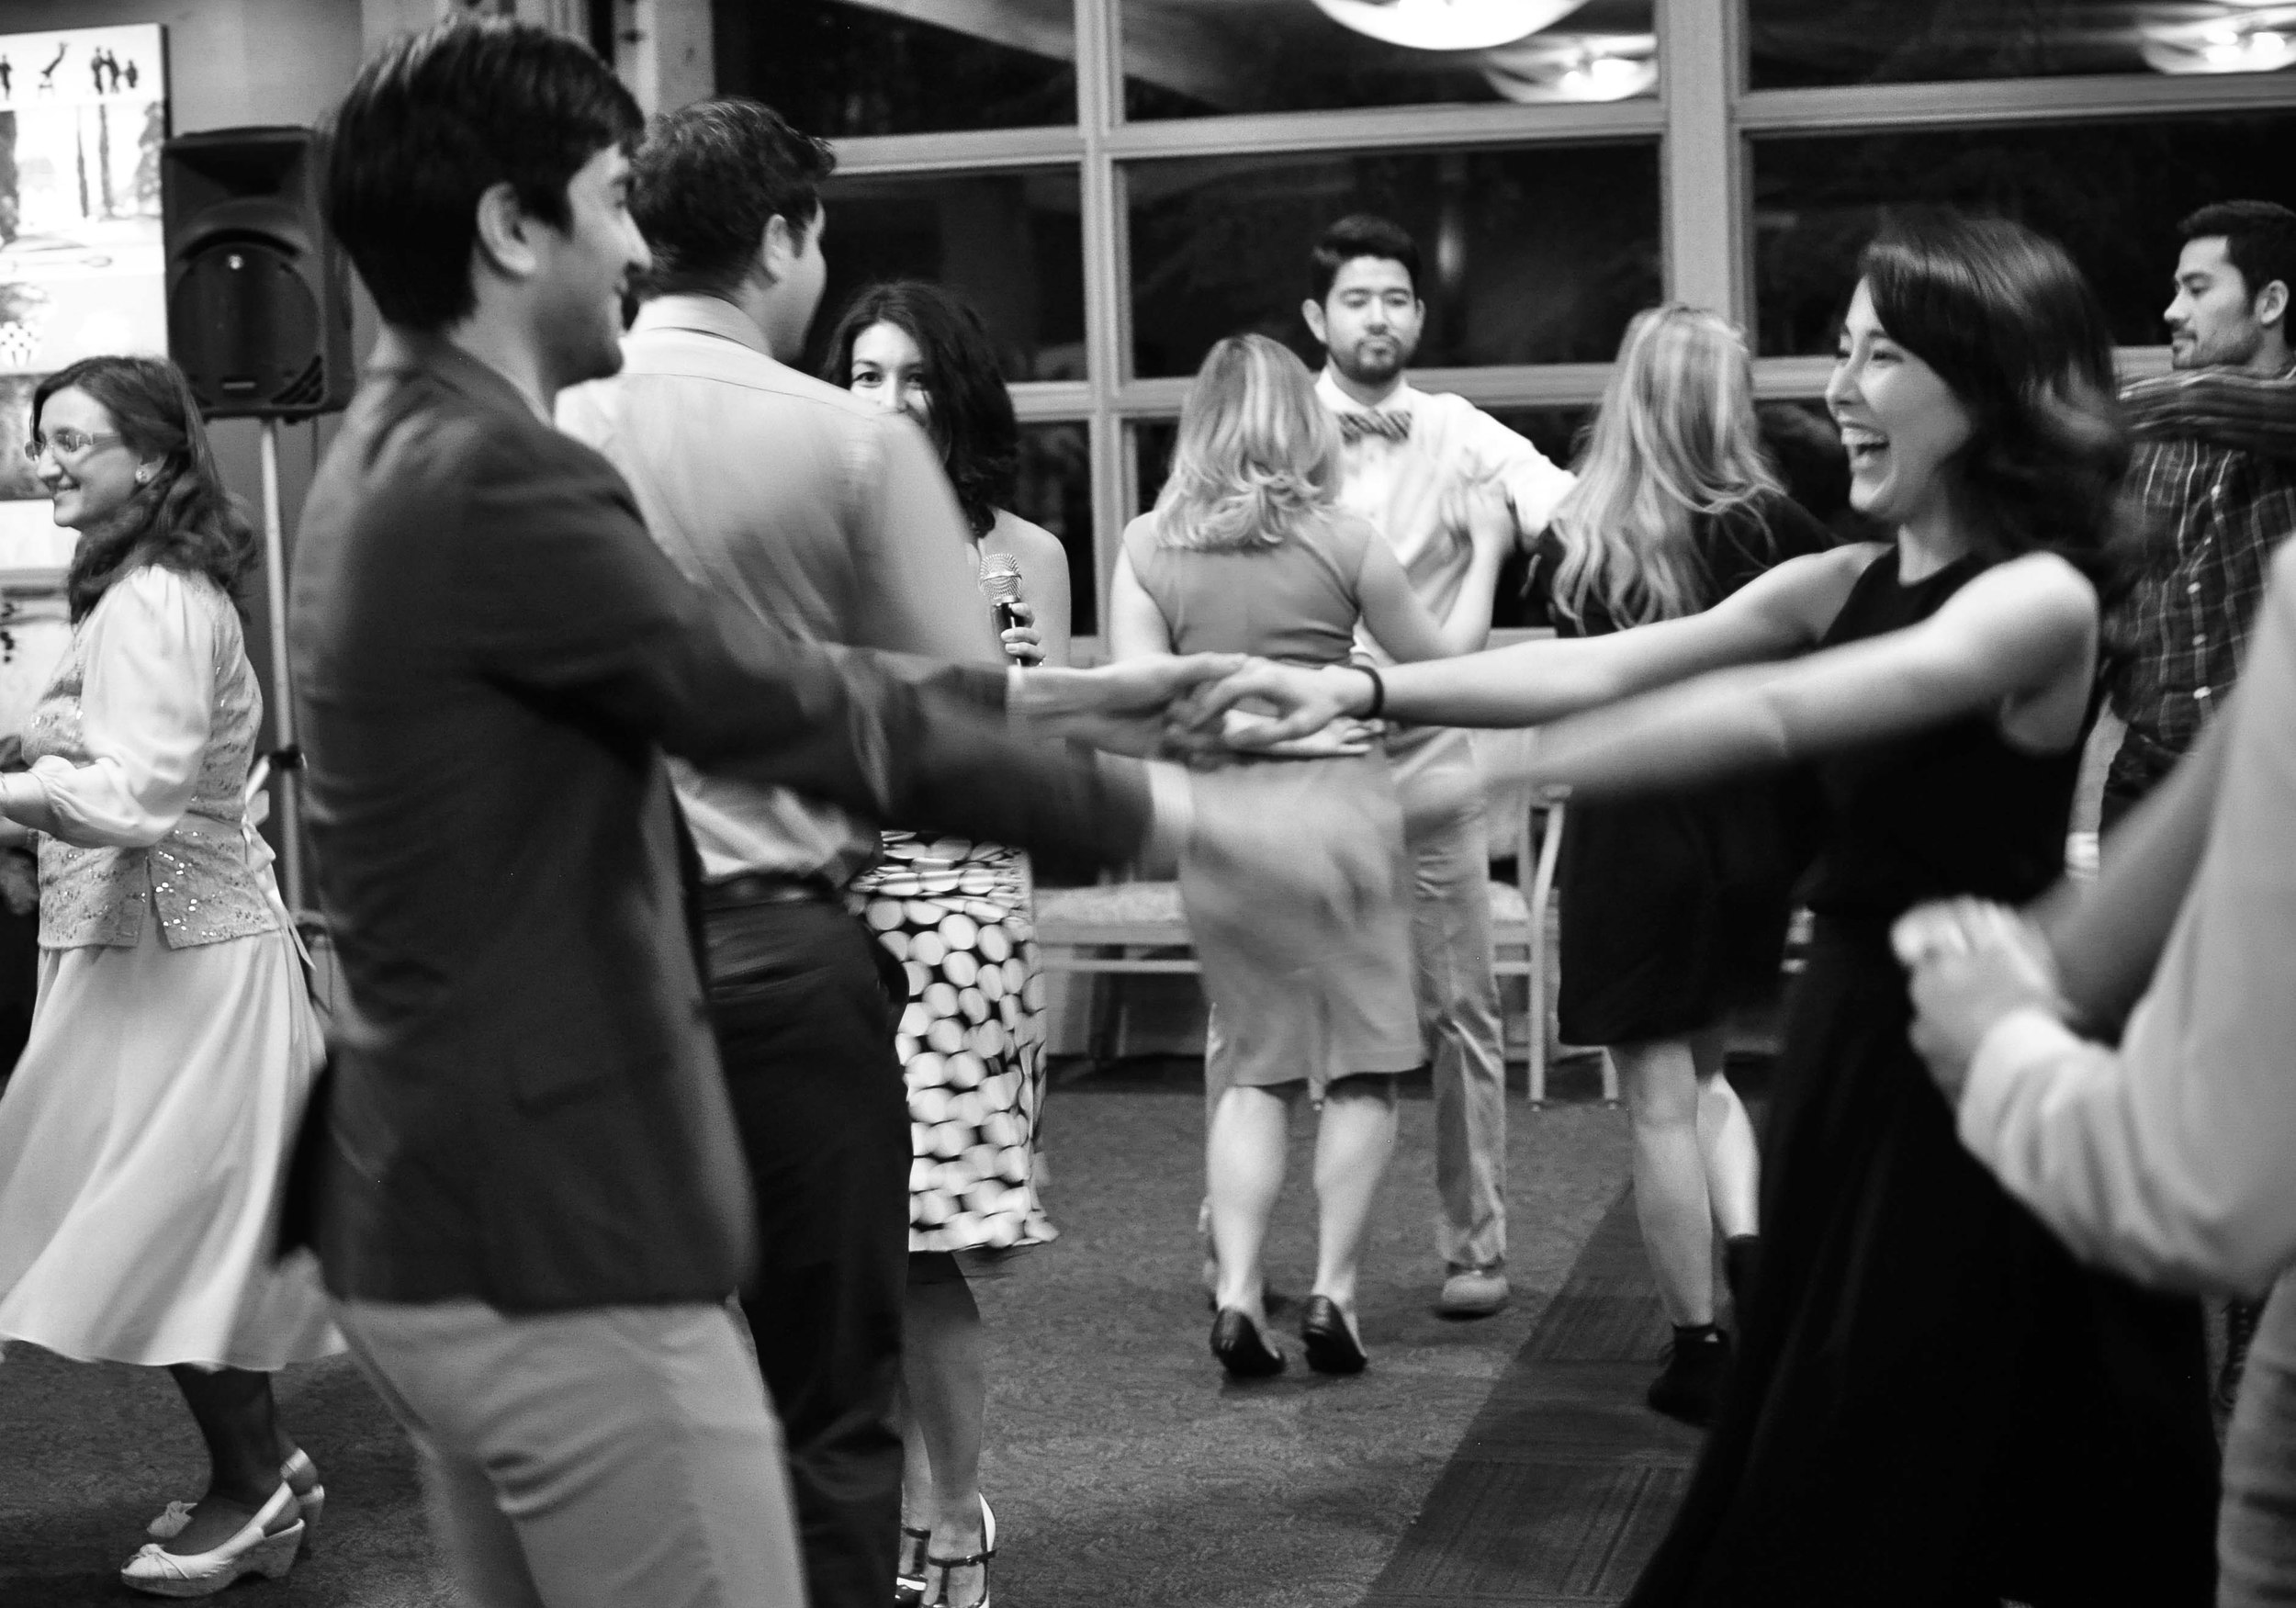 Mixed couples dancing b&w ed 1.jpg